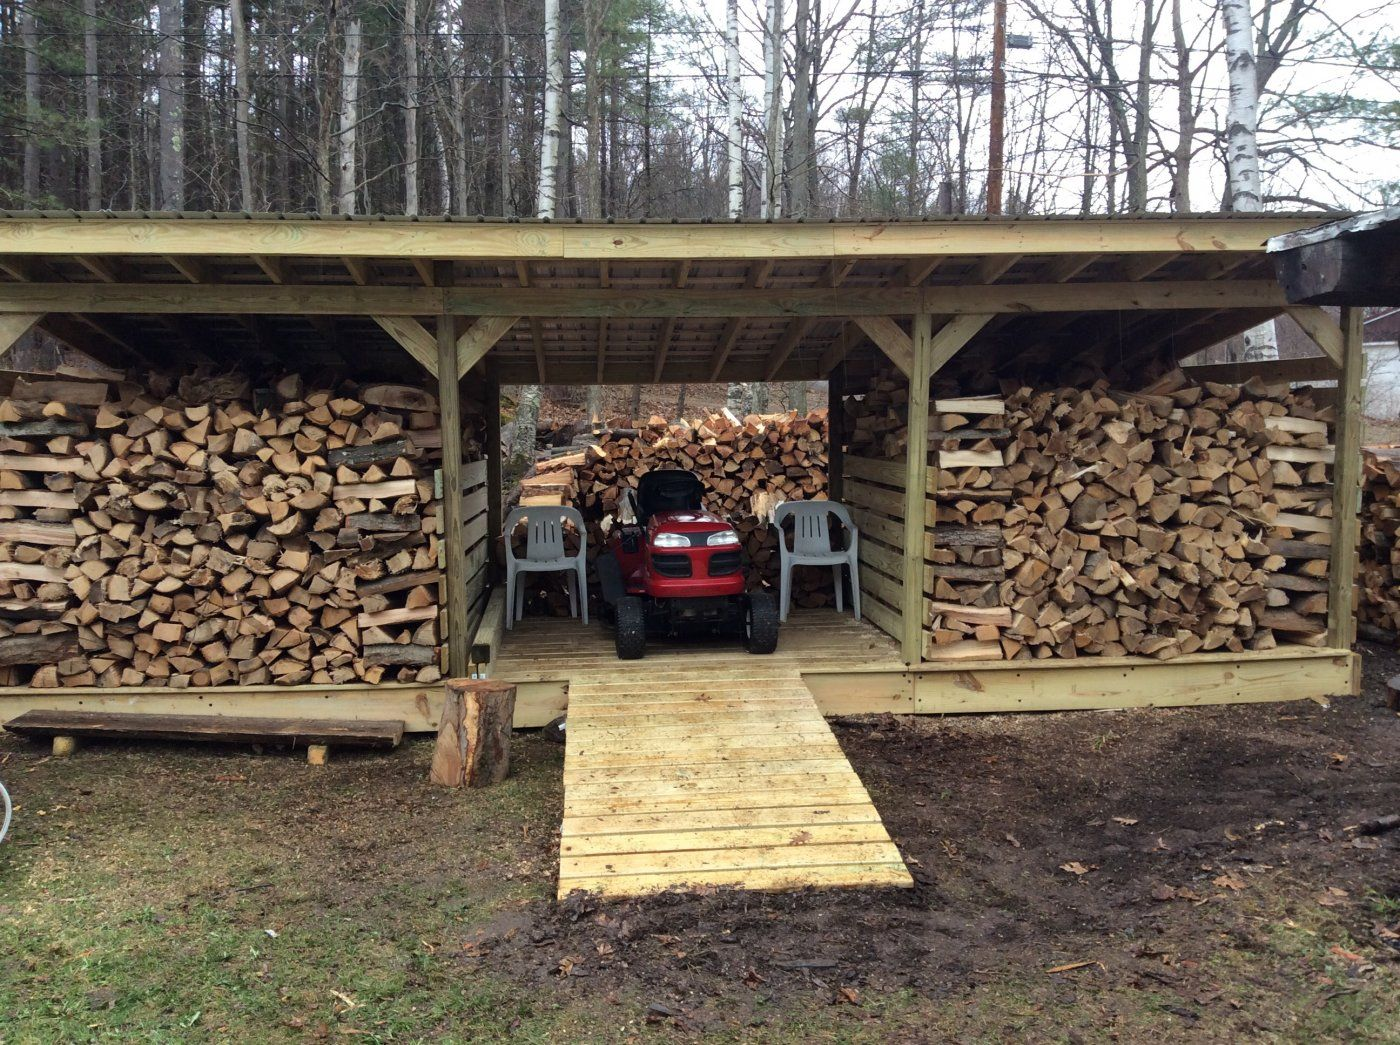 Firewood Lawn Equipment Storage Outside The House Pinterest Lawn Equipment Lawn And Storage